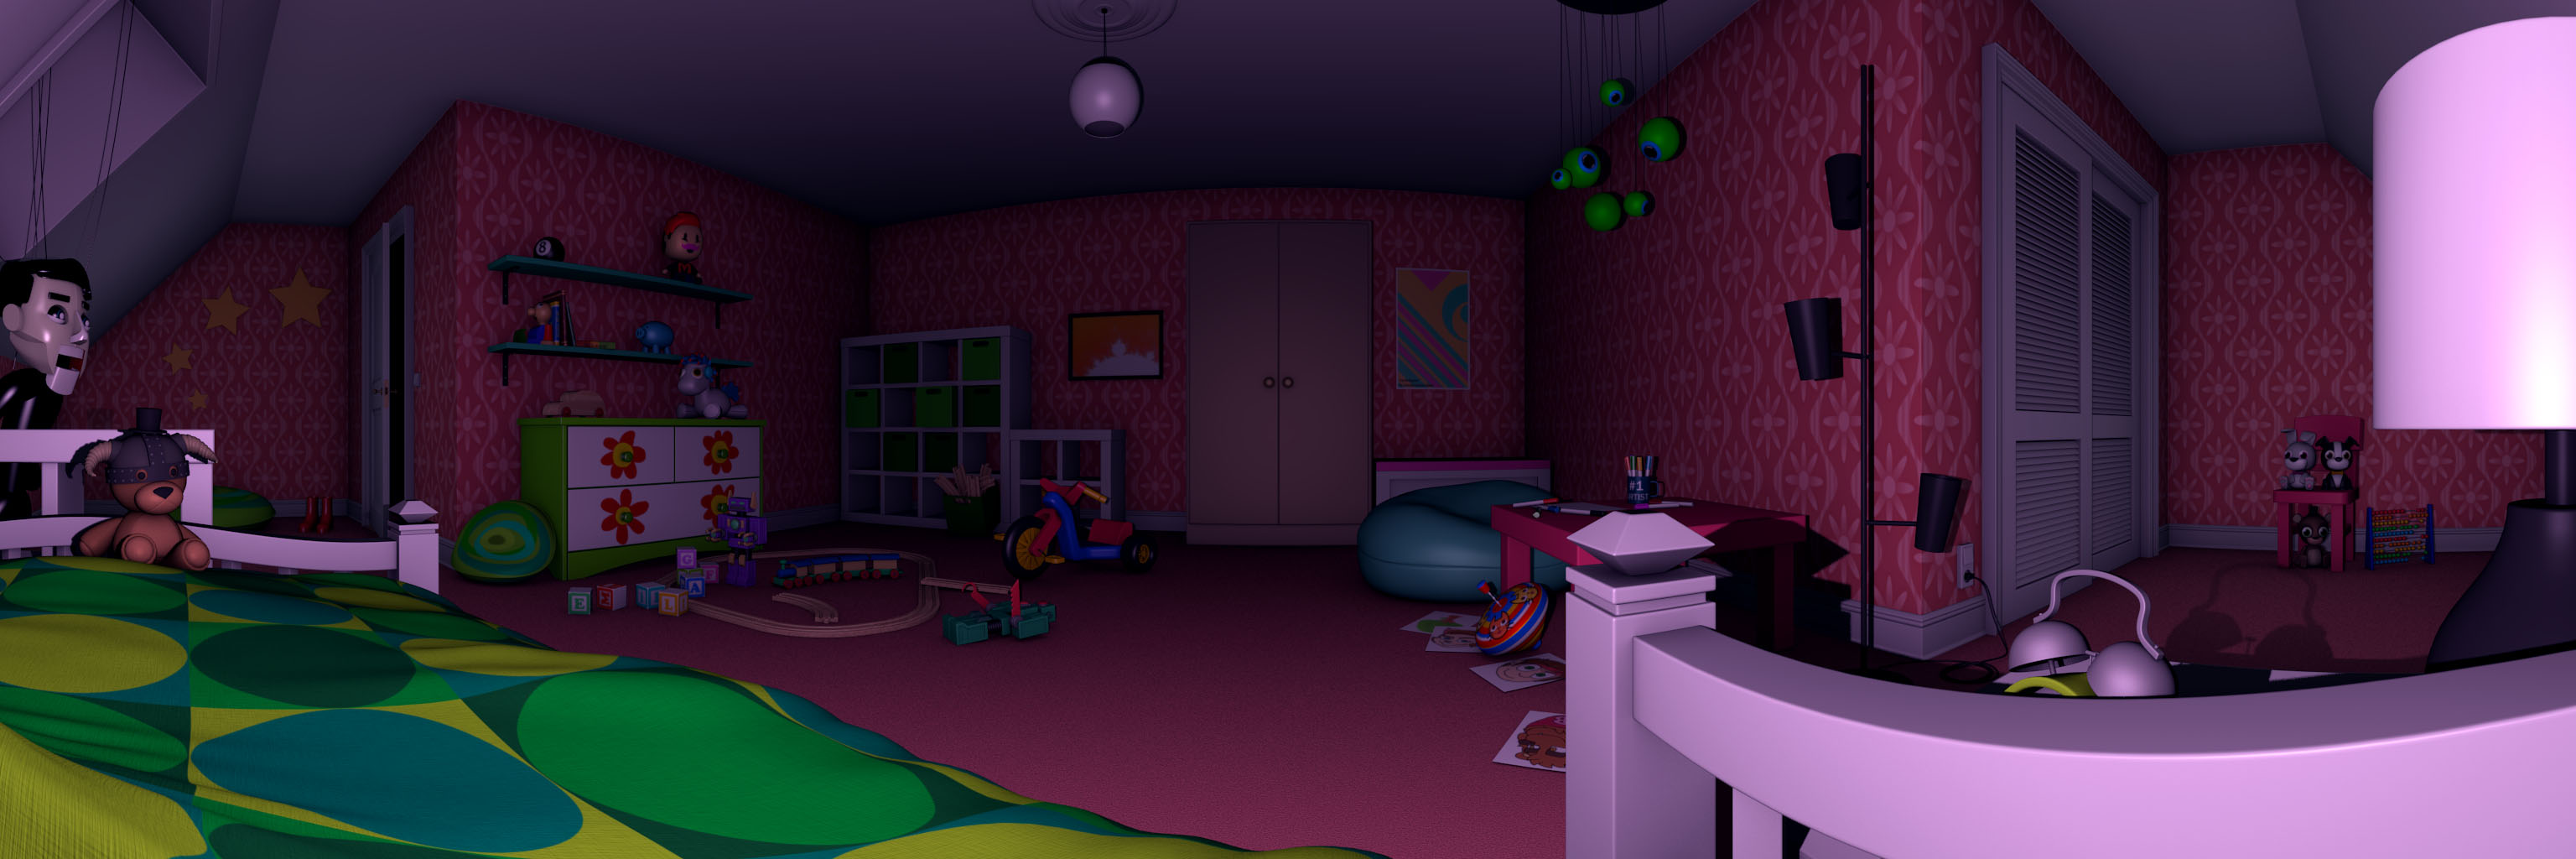 Pictures Of Jacksepticeye S Room